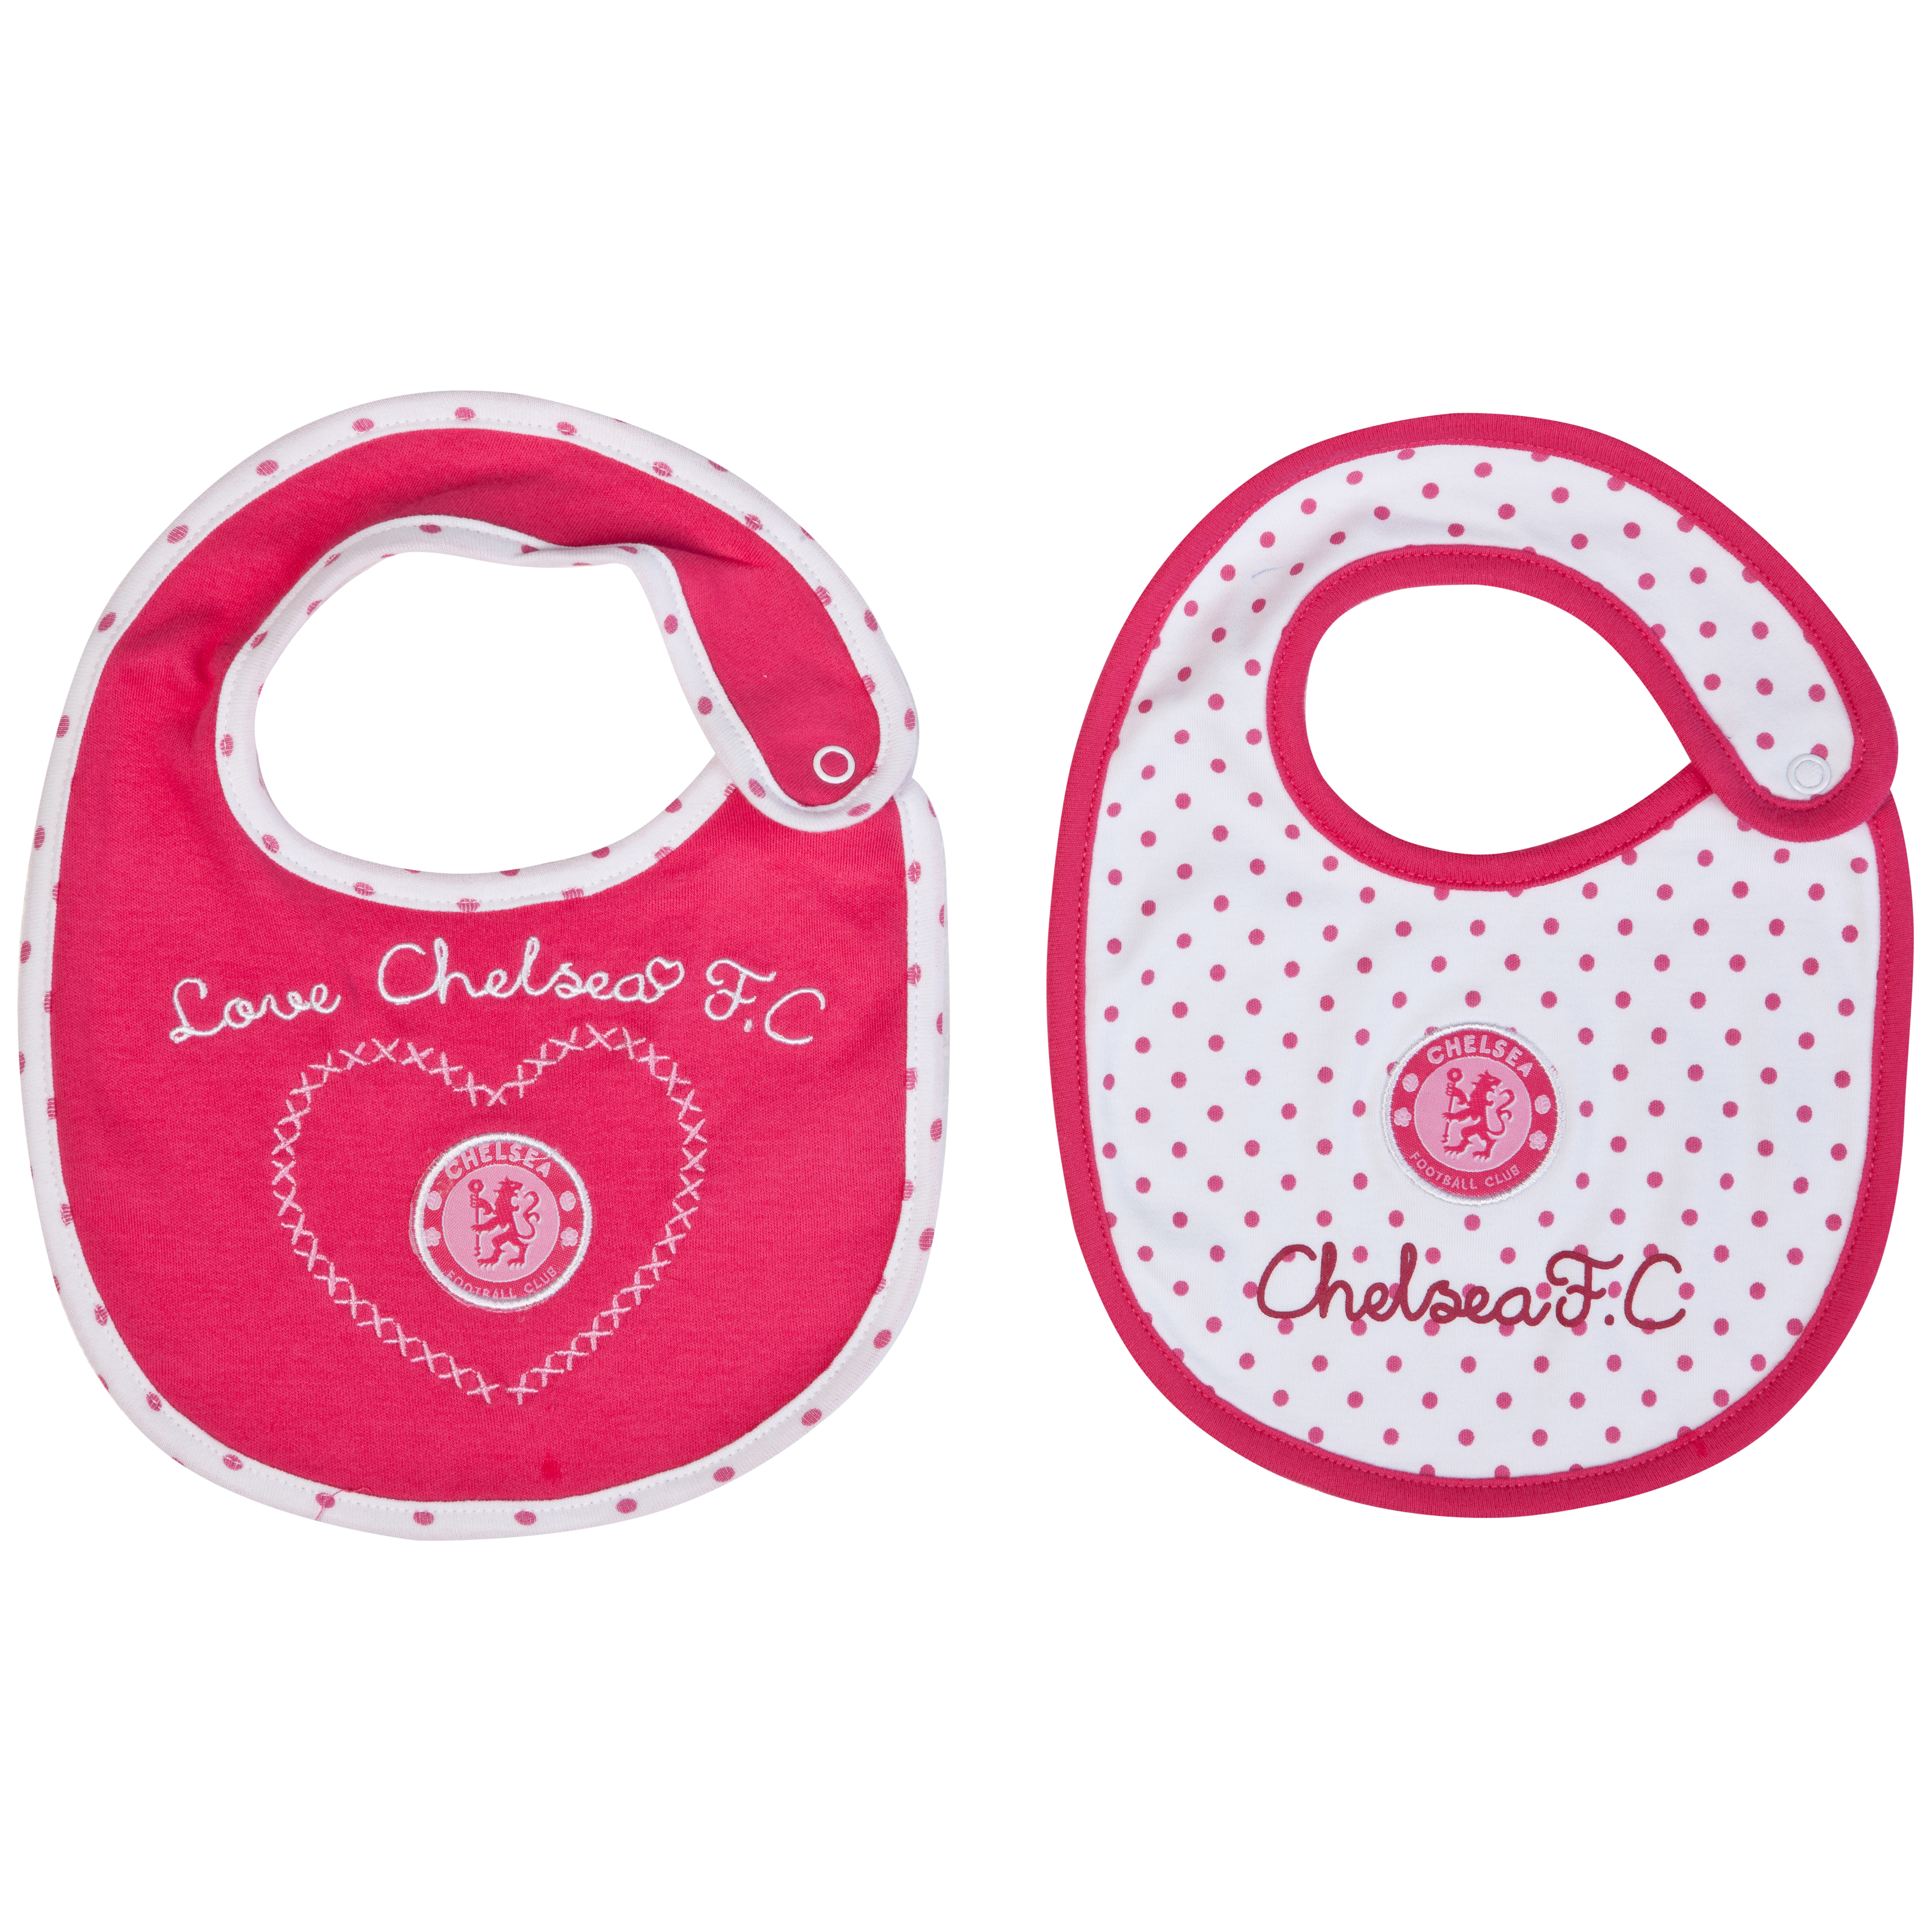 Chelsea Spotty 2 Pack Bibs - White/Passion Pink - Baby Girls